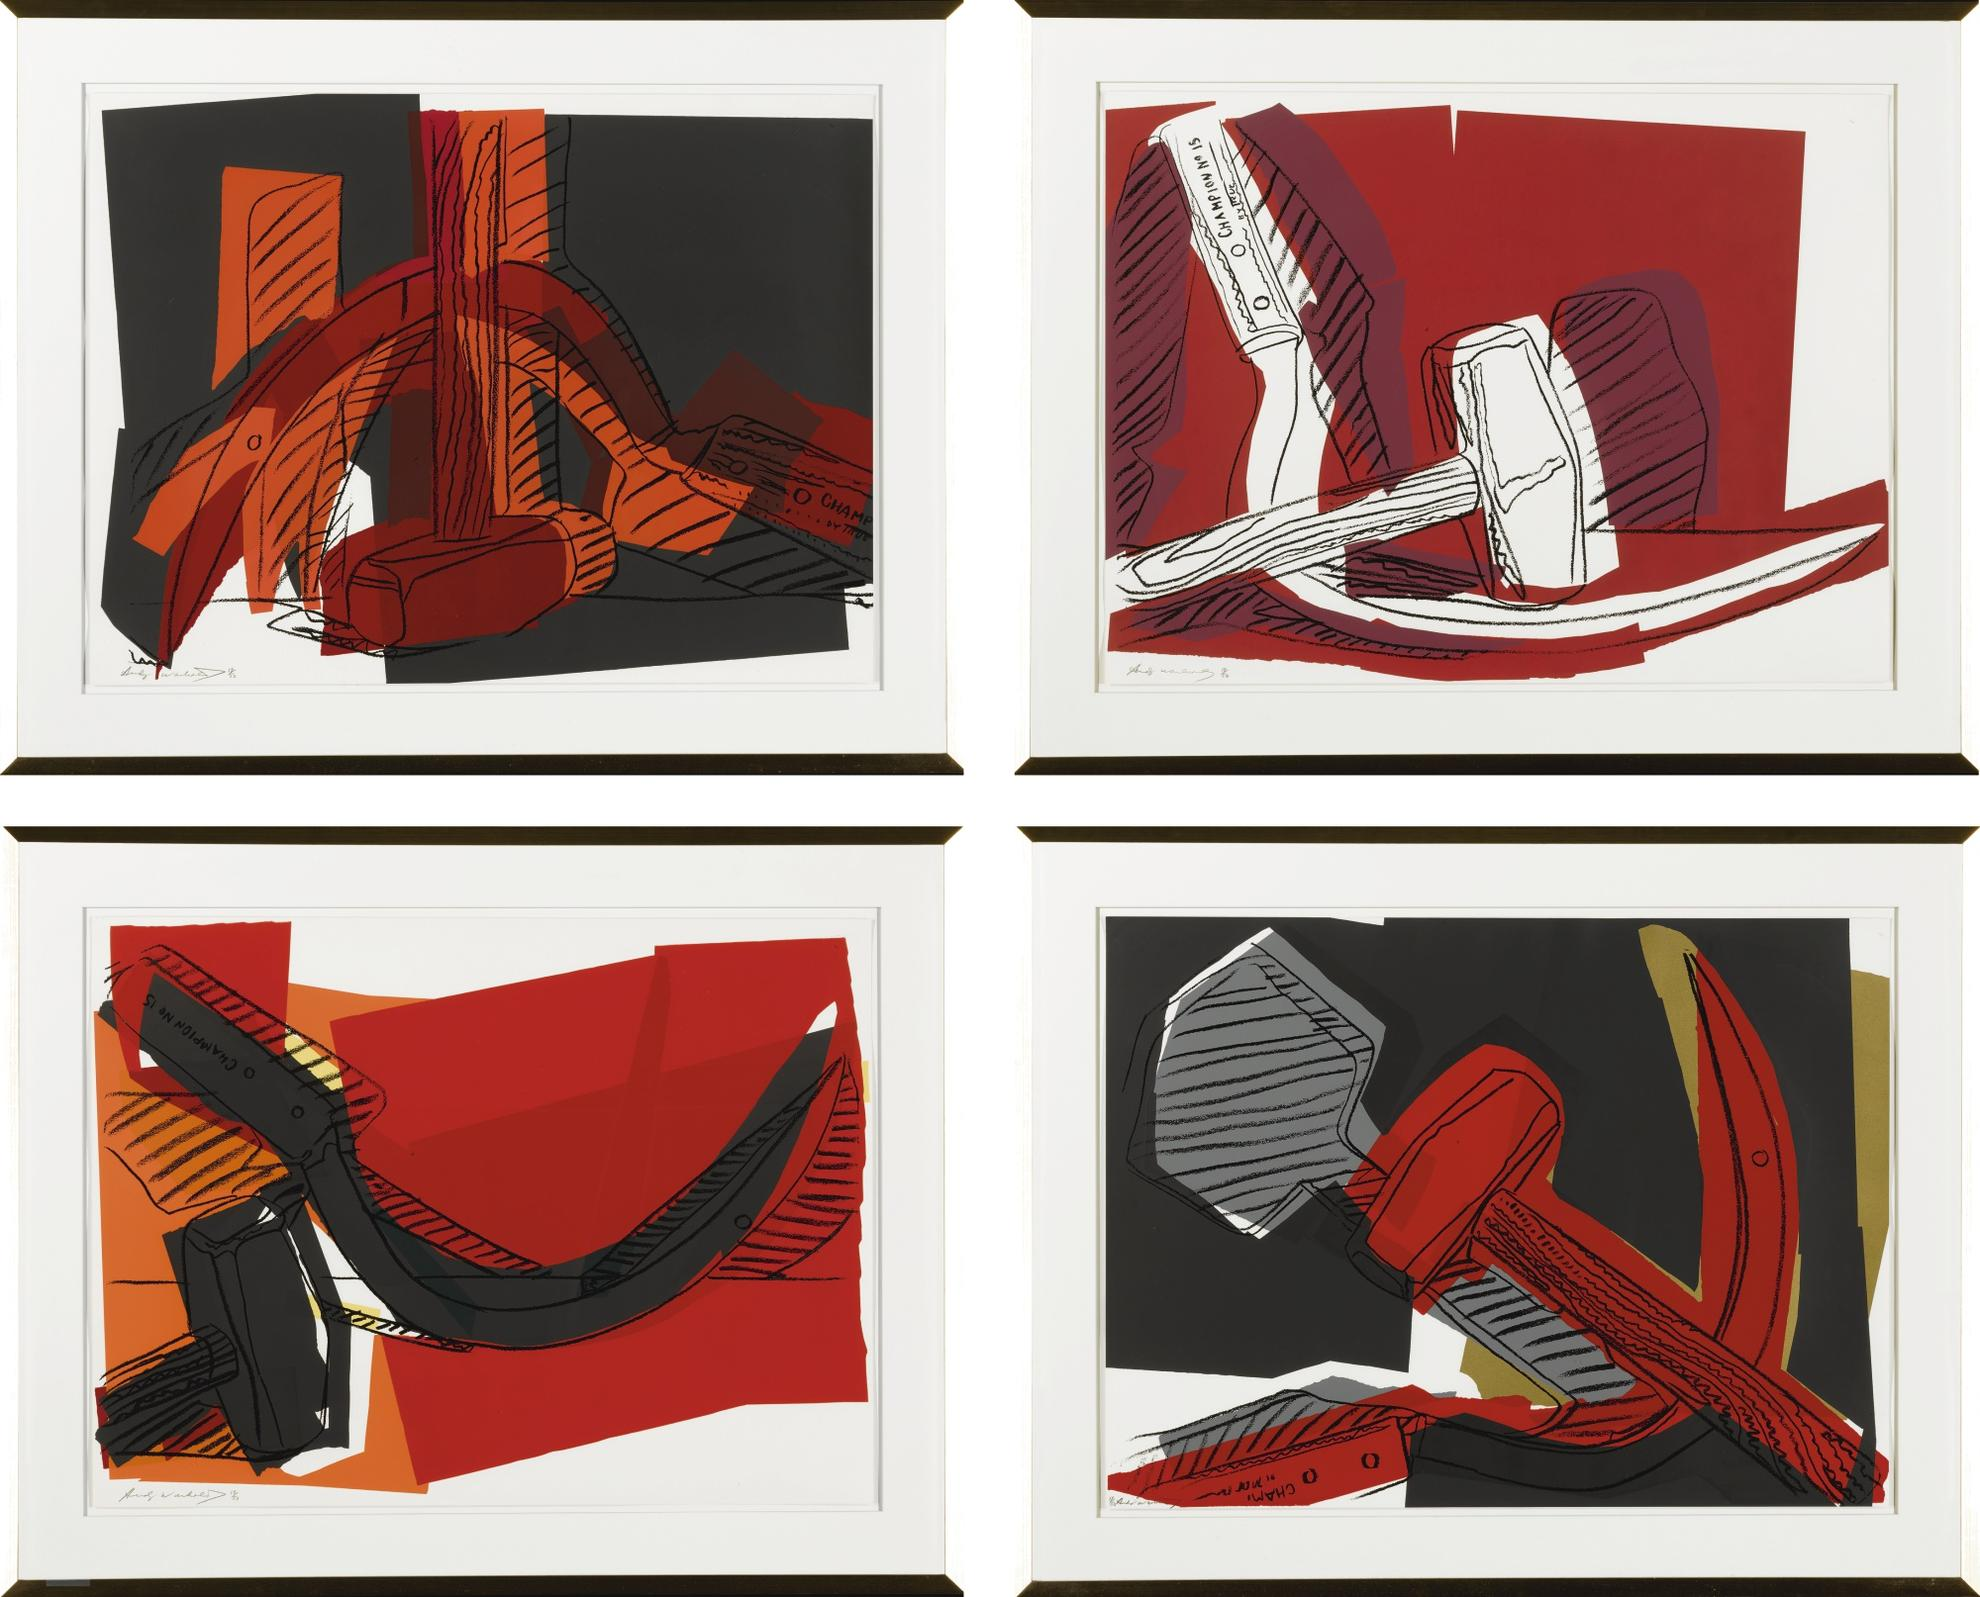 Andy Warhol-Hammer And Sickle (Feldman & Schellmann II.161-164)-1977